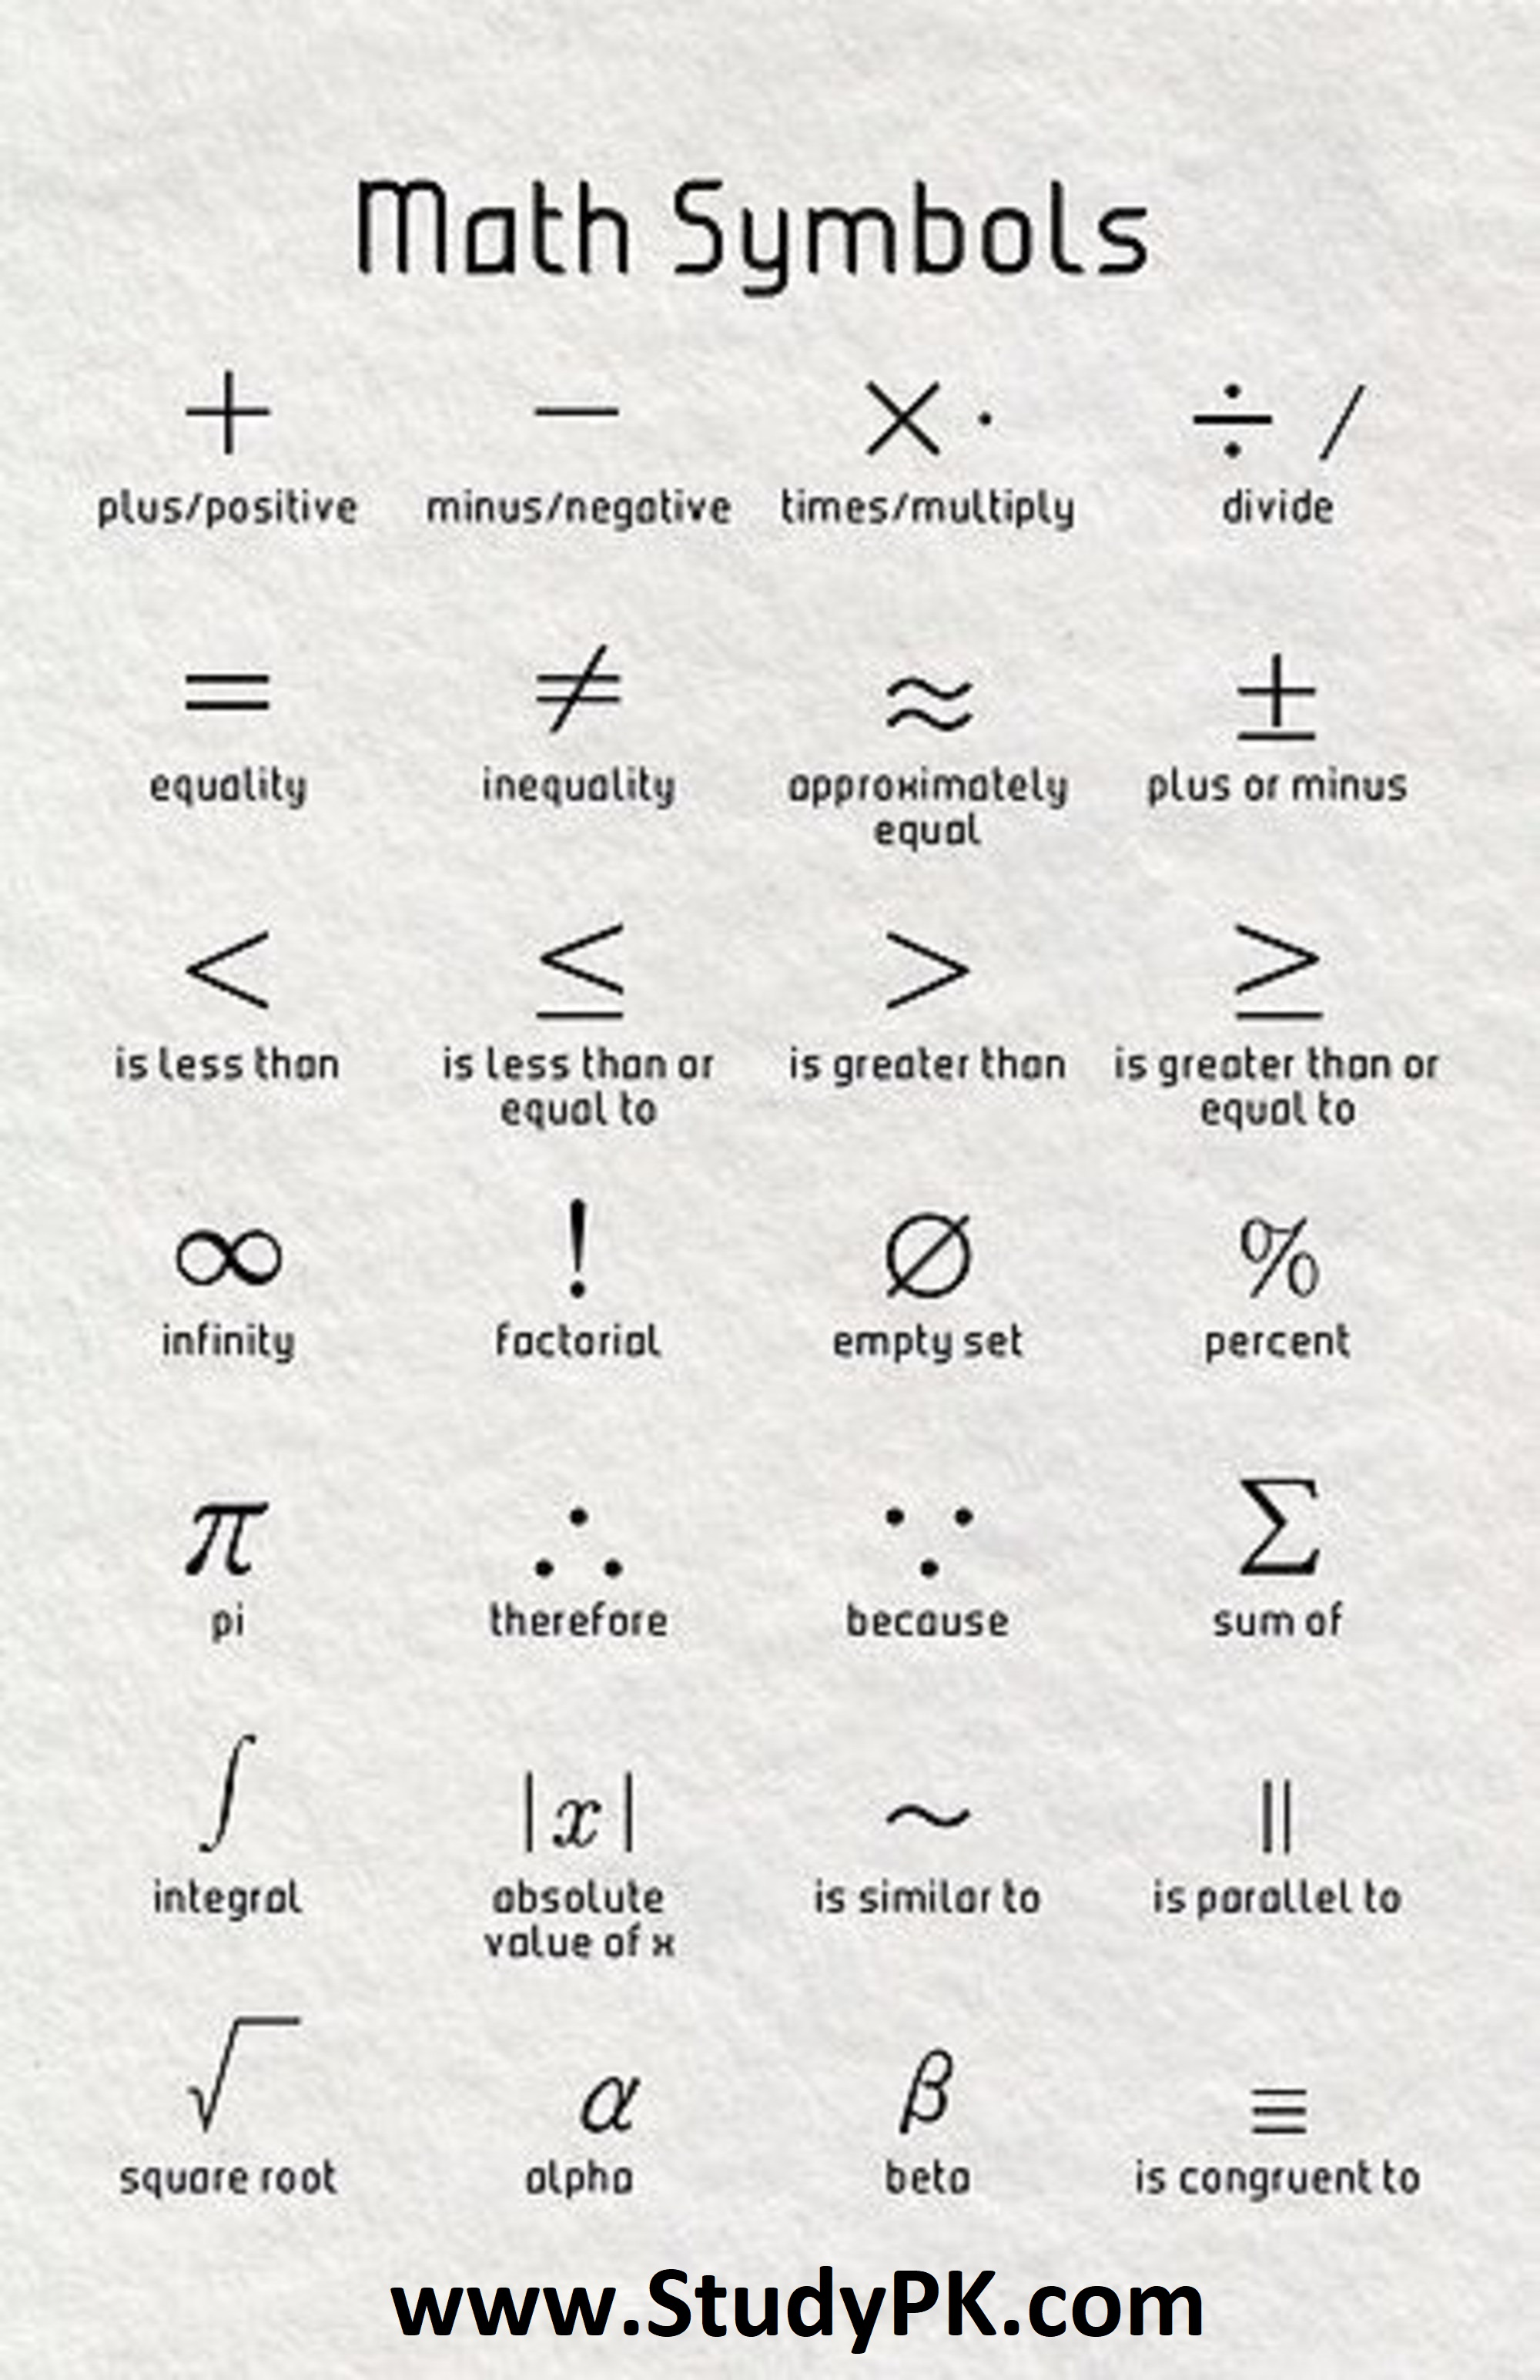 Mathematical symbols with their English names (+,-,x,/,=,<,>,...)